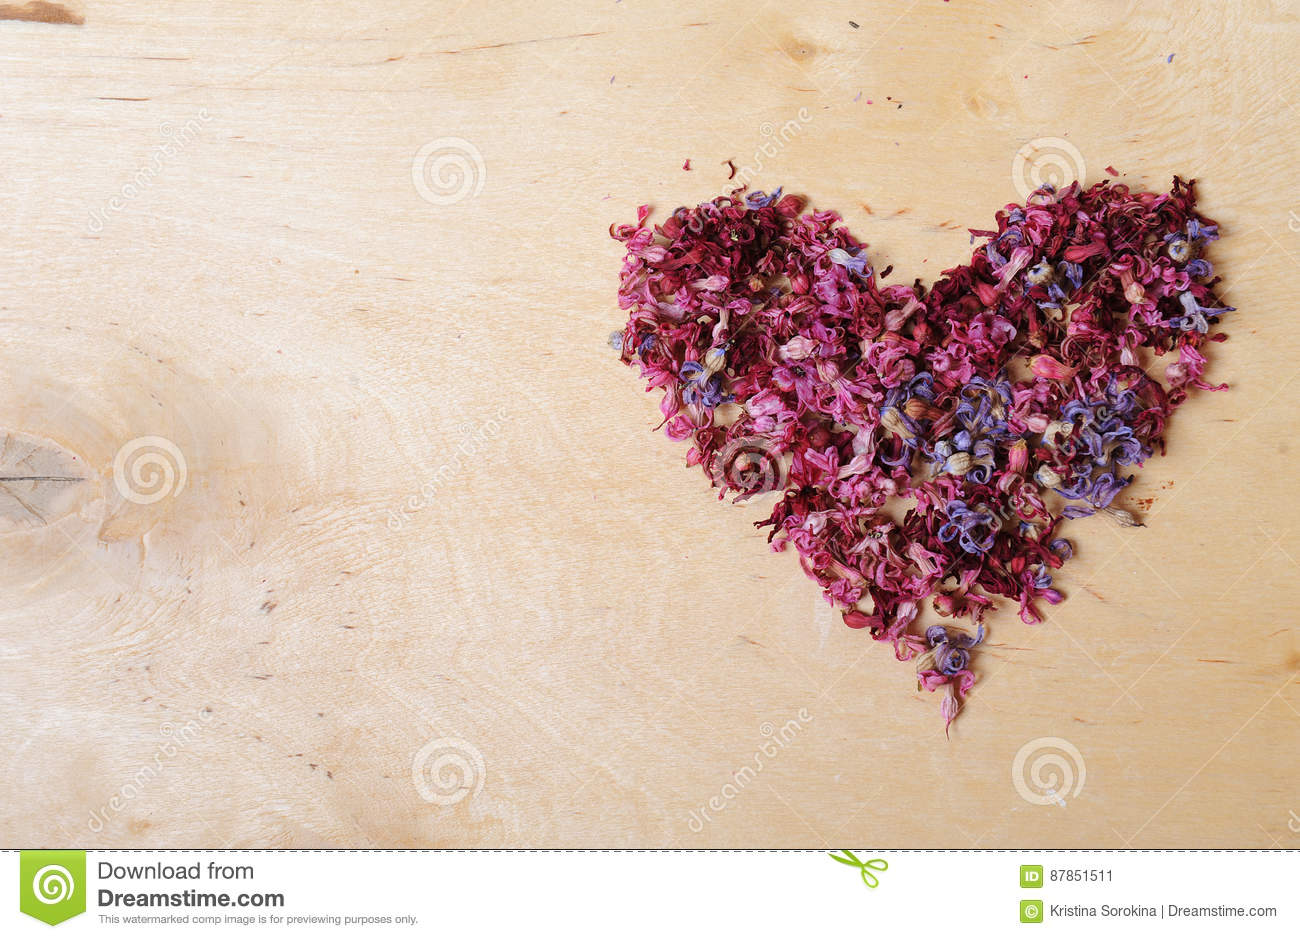 Heart of dried flowers on a wooden background